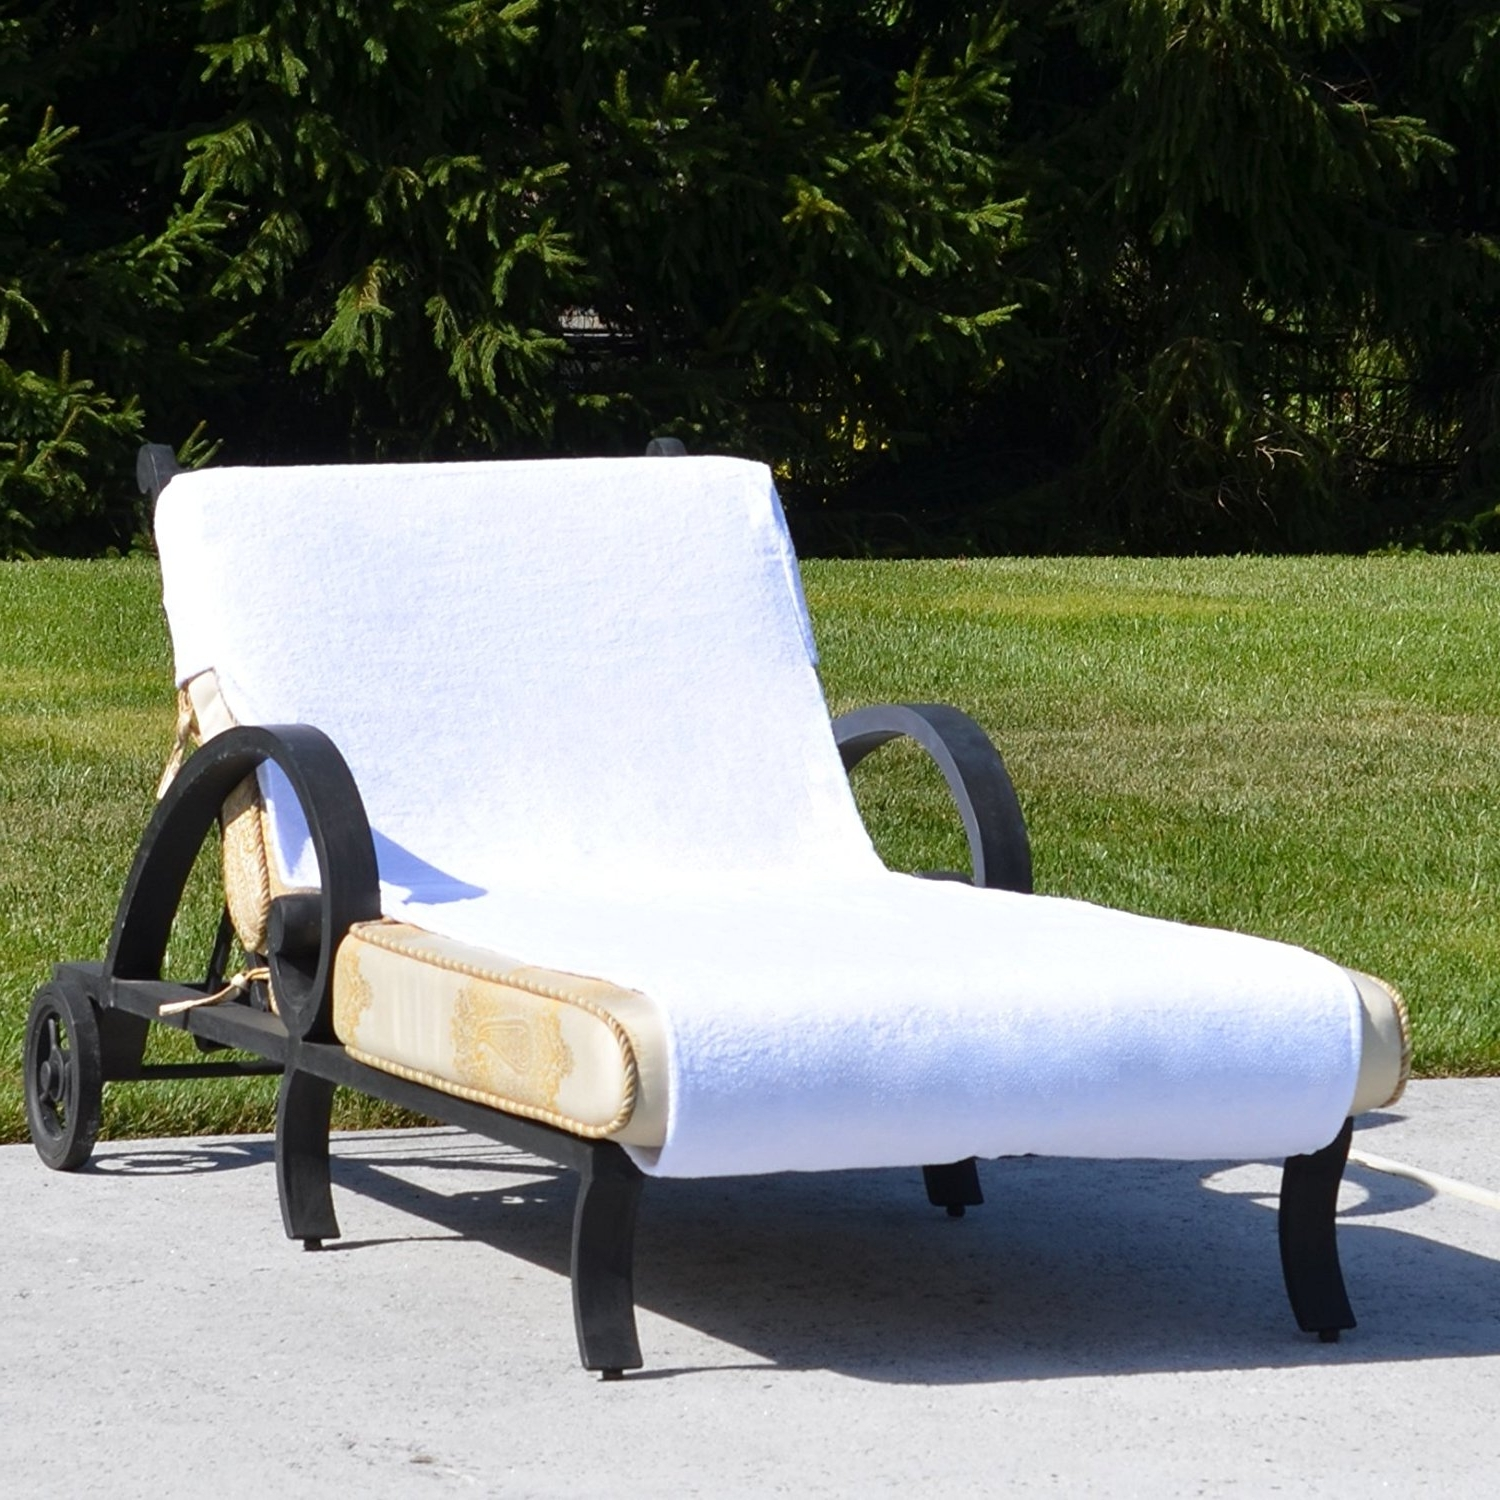 Chaise Lounge Covers With Regard To Most Popular Amazon : Linum Home Textiles Cl00 Snp Standard Size Chaise (View 4 of 15)